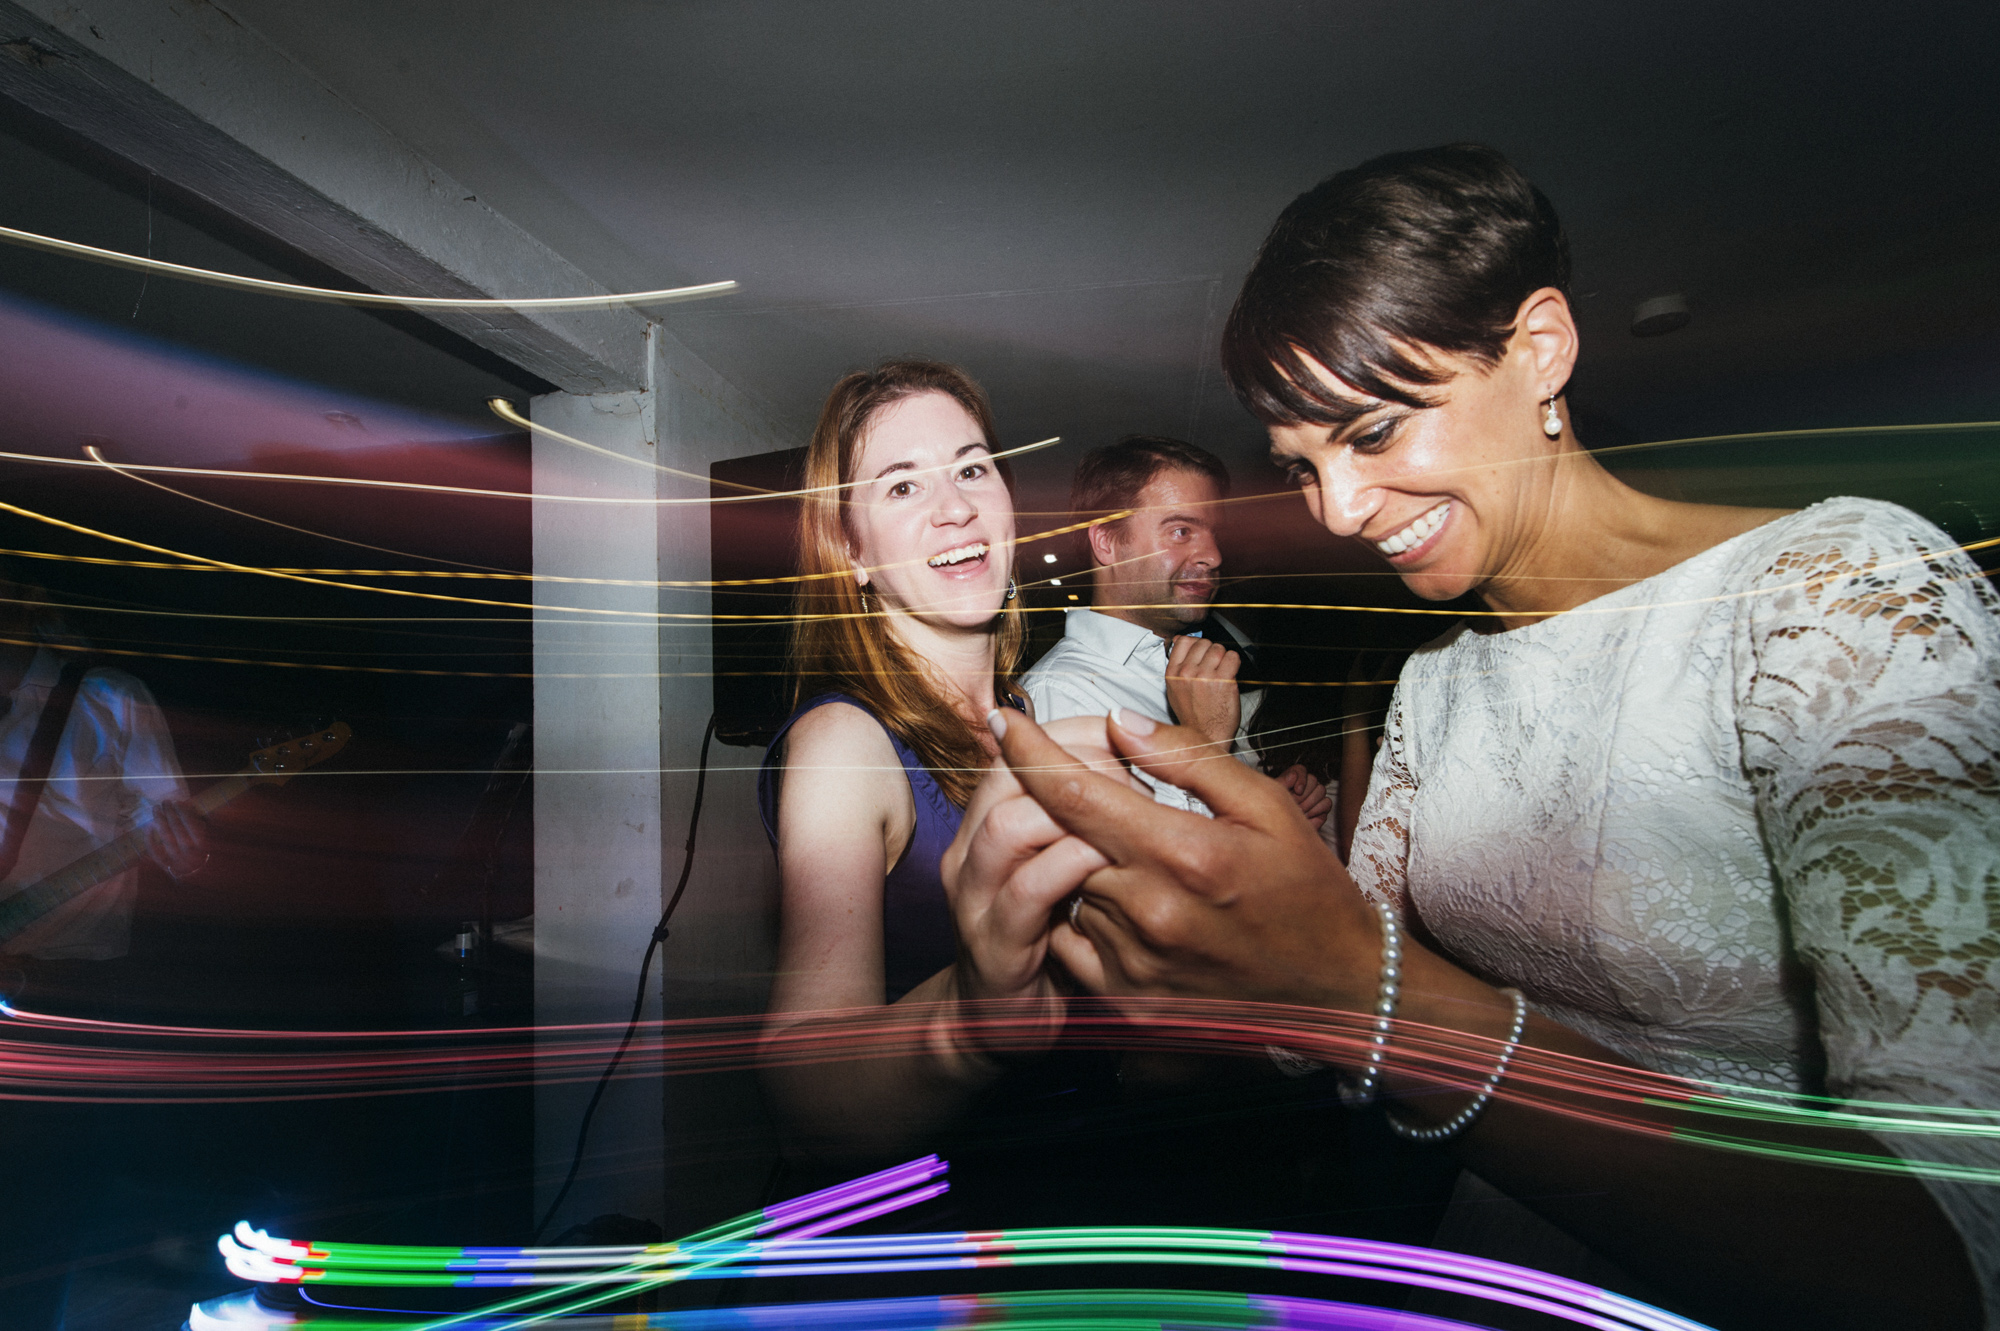 Bride and friends on the dance floor - same sex wedding photography The Roost Dalston London wedding photographer © Babb Photo